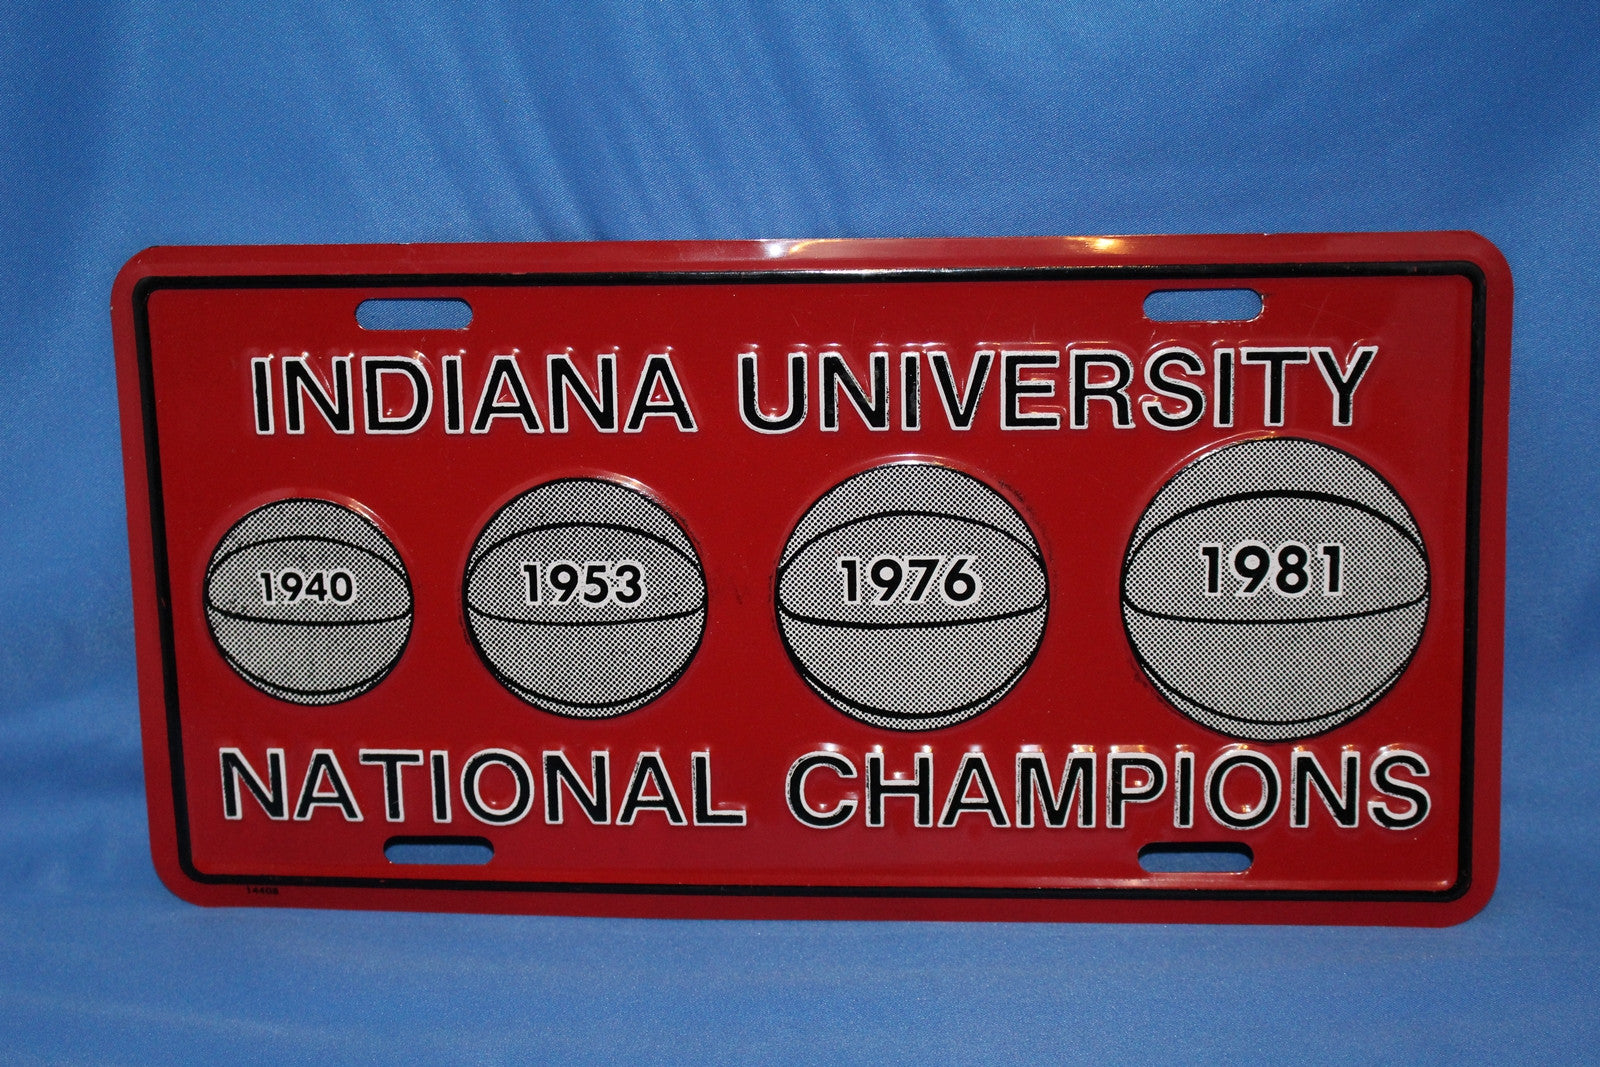 1981 Indiana University NCAA Basketball Champions License Plate - Vintage Indy Sports